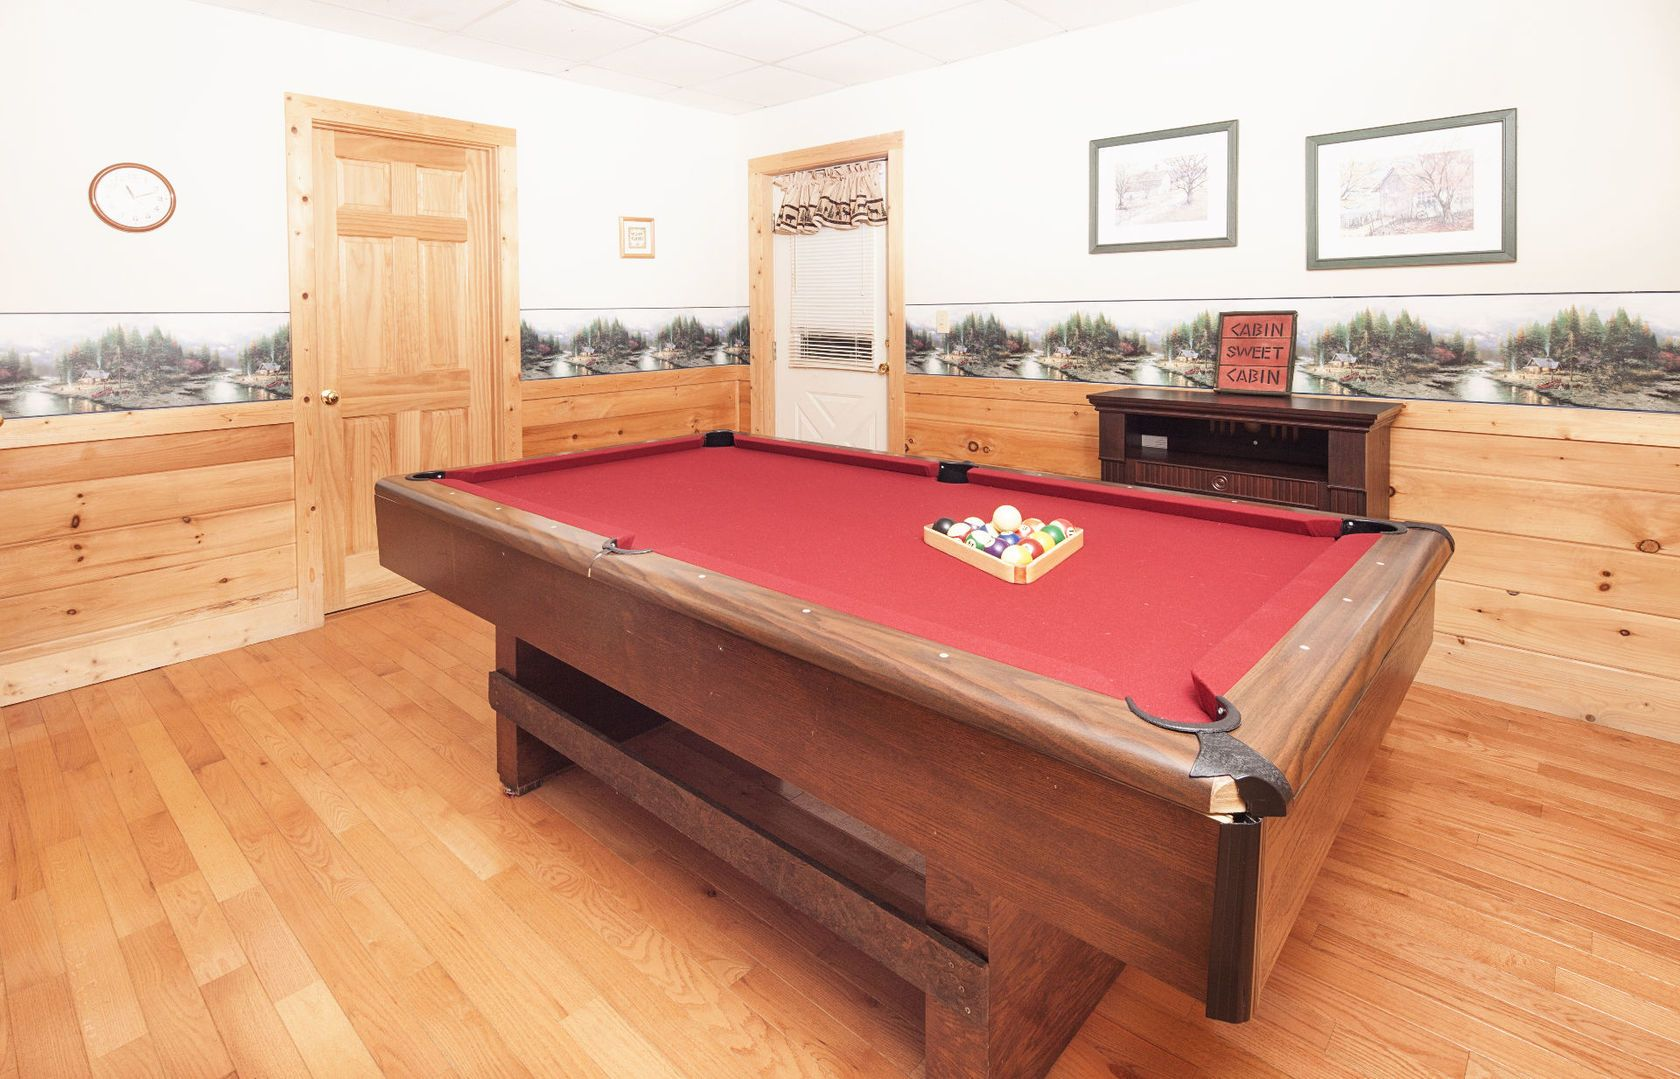 Young's Hideaway Challenge someone to a game of pool